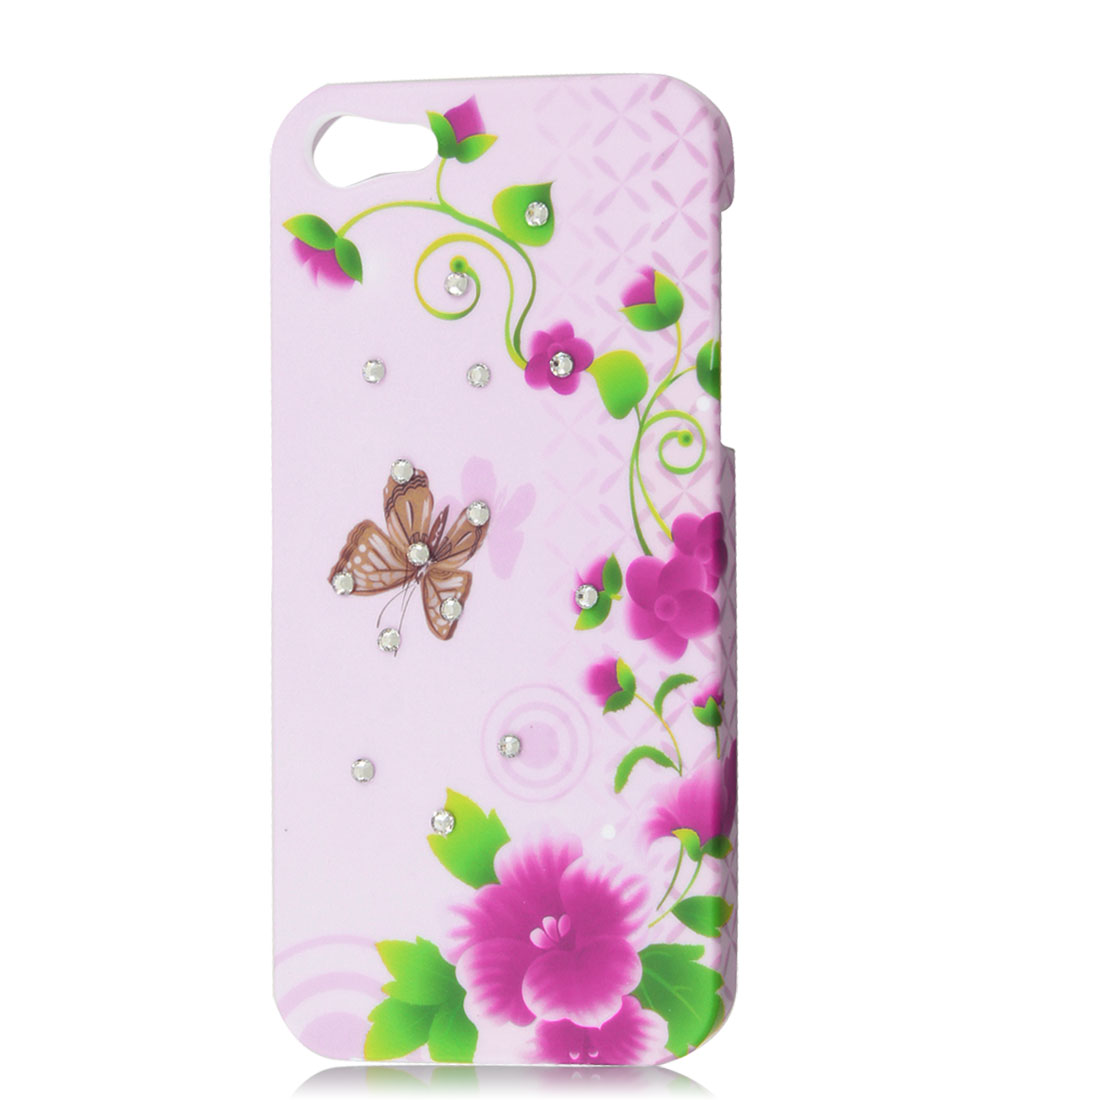 Shiny Rhinestone Butterfly Green Leaf Pink Flower Hard Back Case for iPhone 5 5G